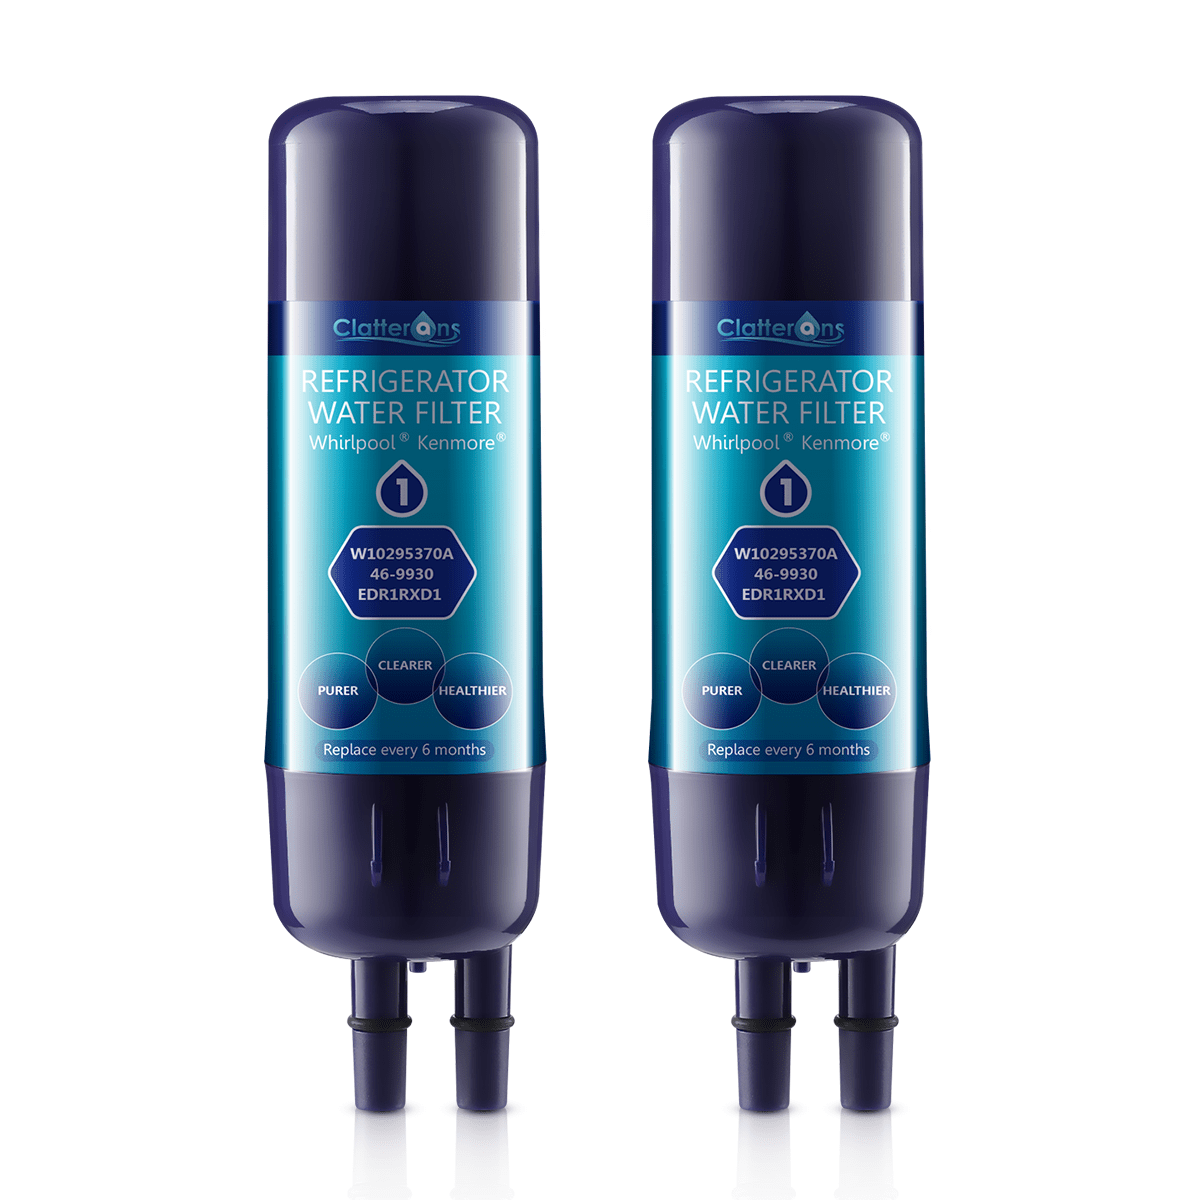 Whirlpool Refrigerator Water Filter 1 EDR1RXD1 W10295370 Amp Kenmore 9930 Water Filter 2 Pack